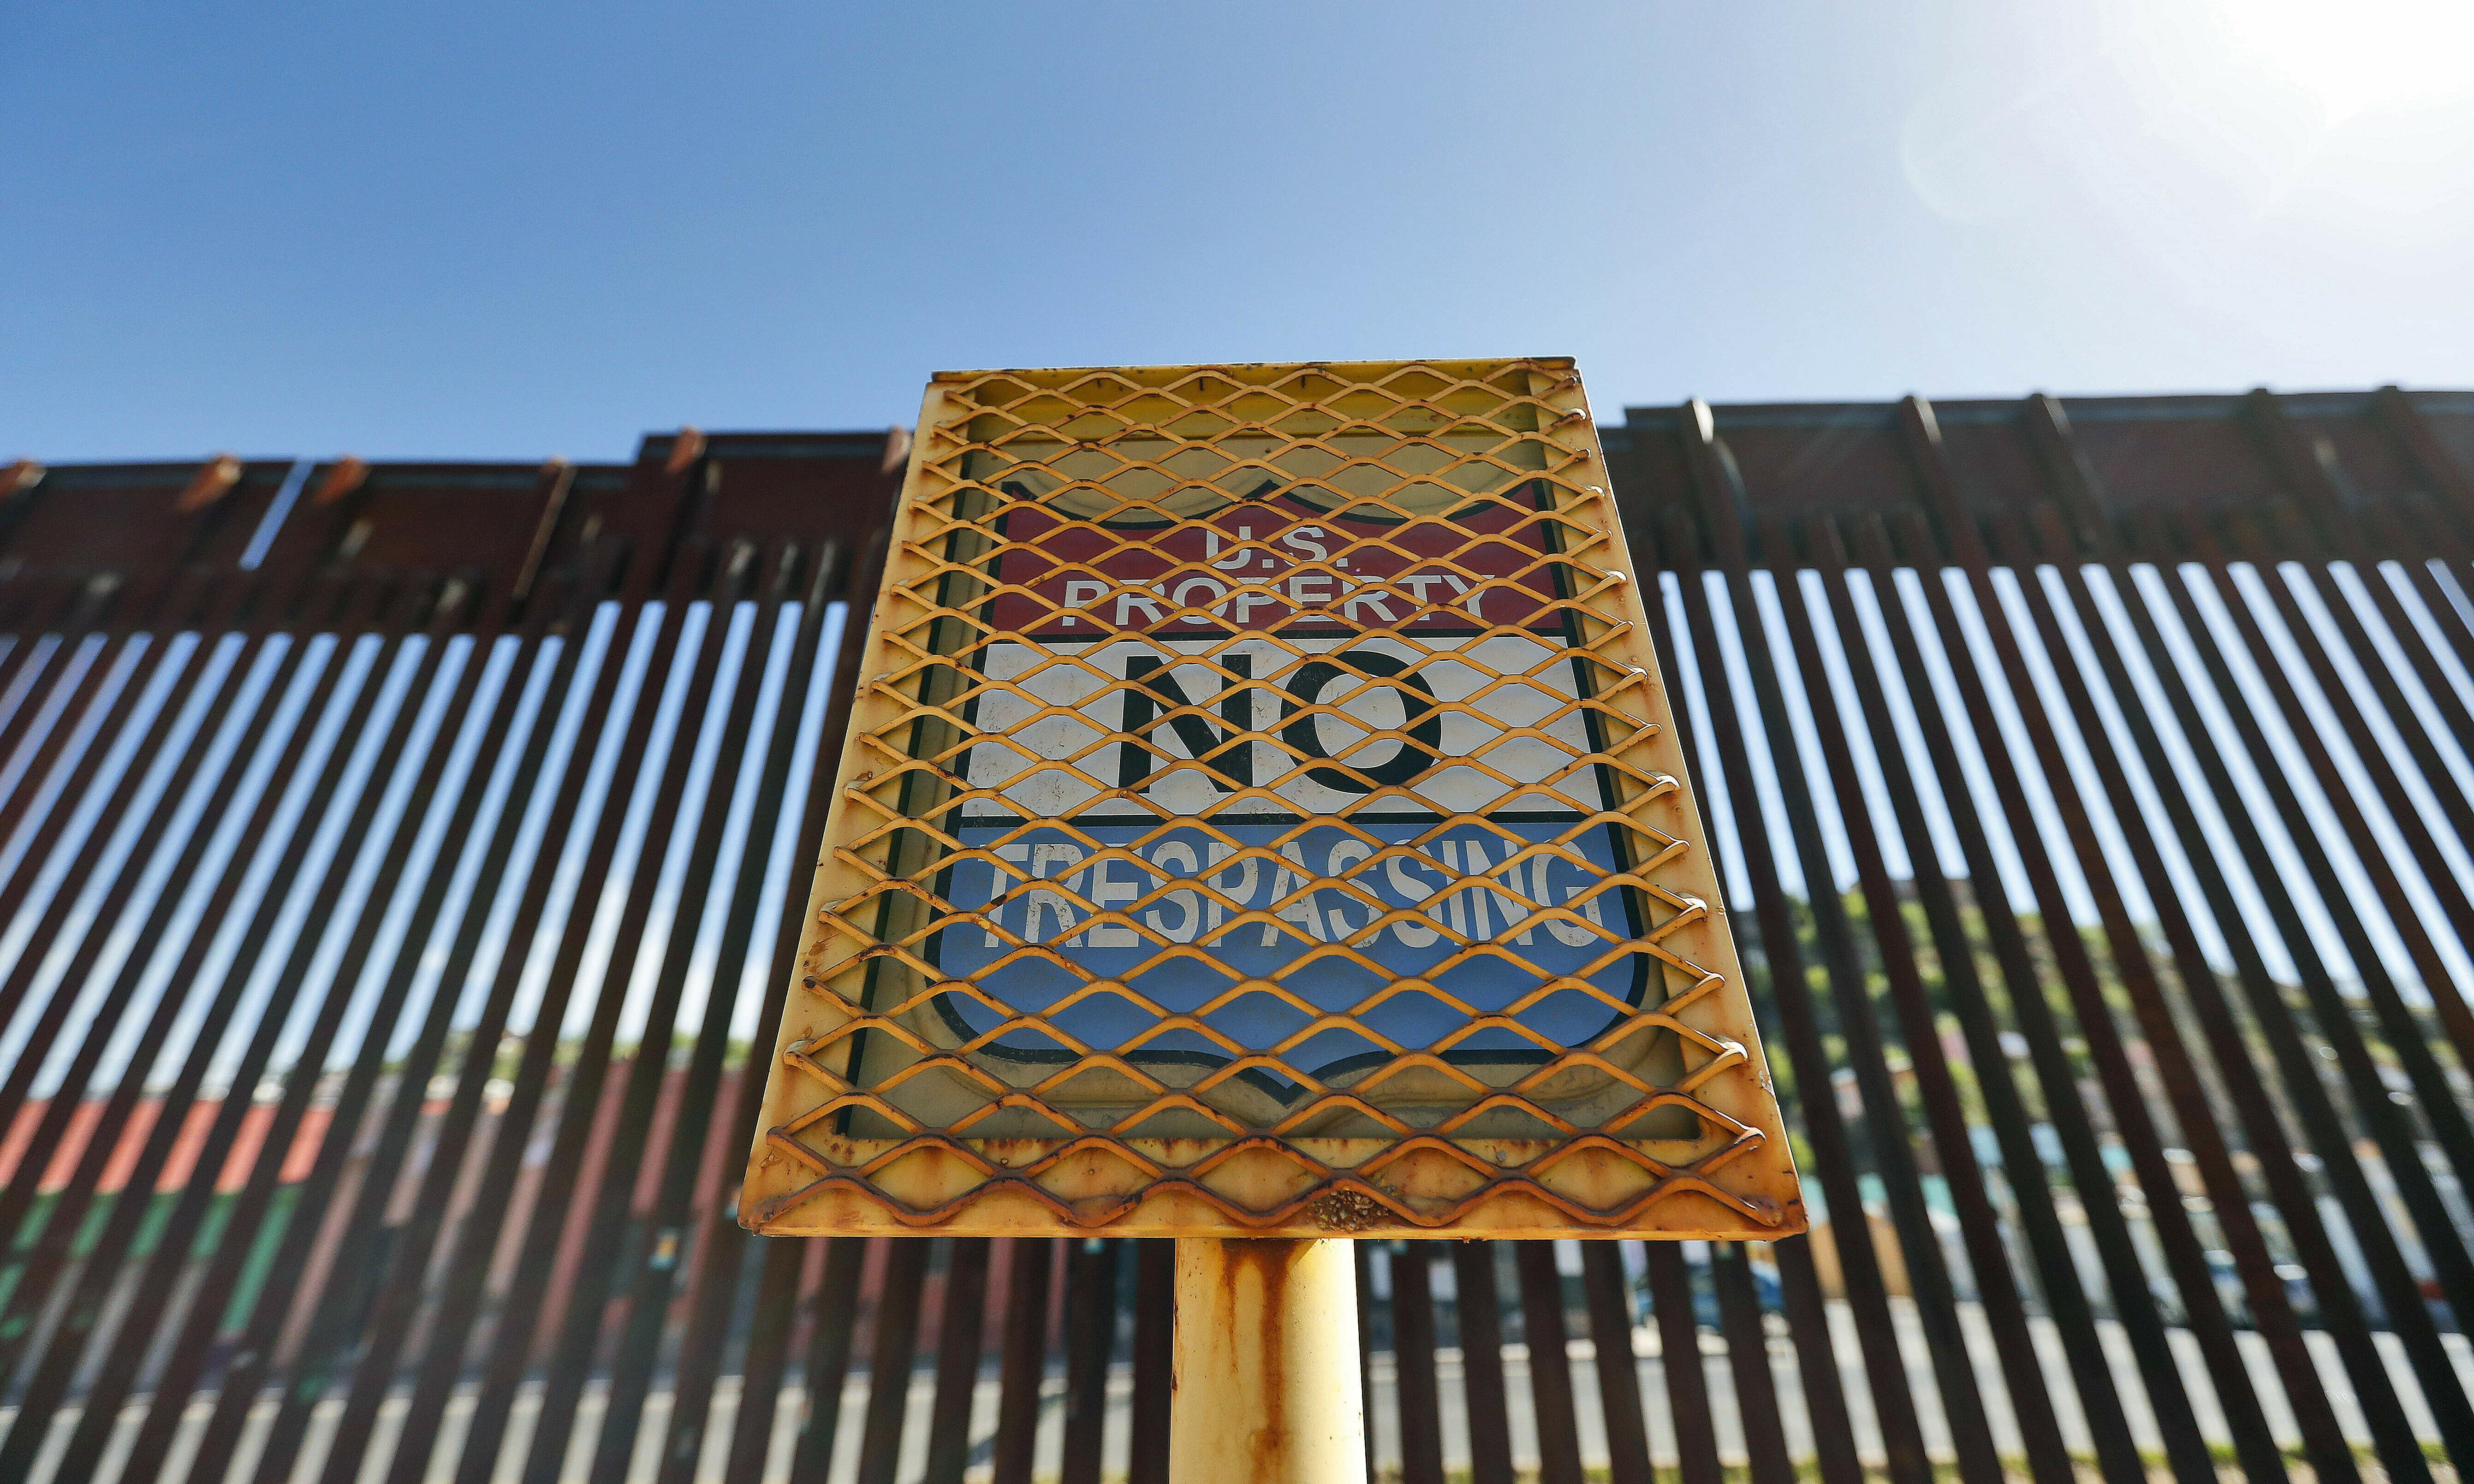 How Trump's 'invisible wall' policies have already curbed immigration